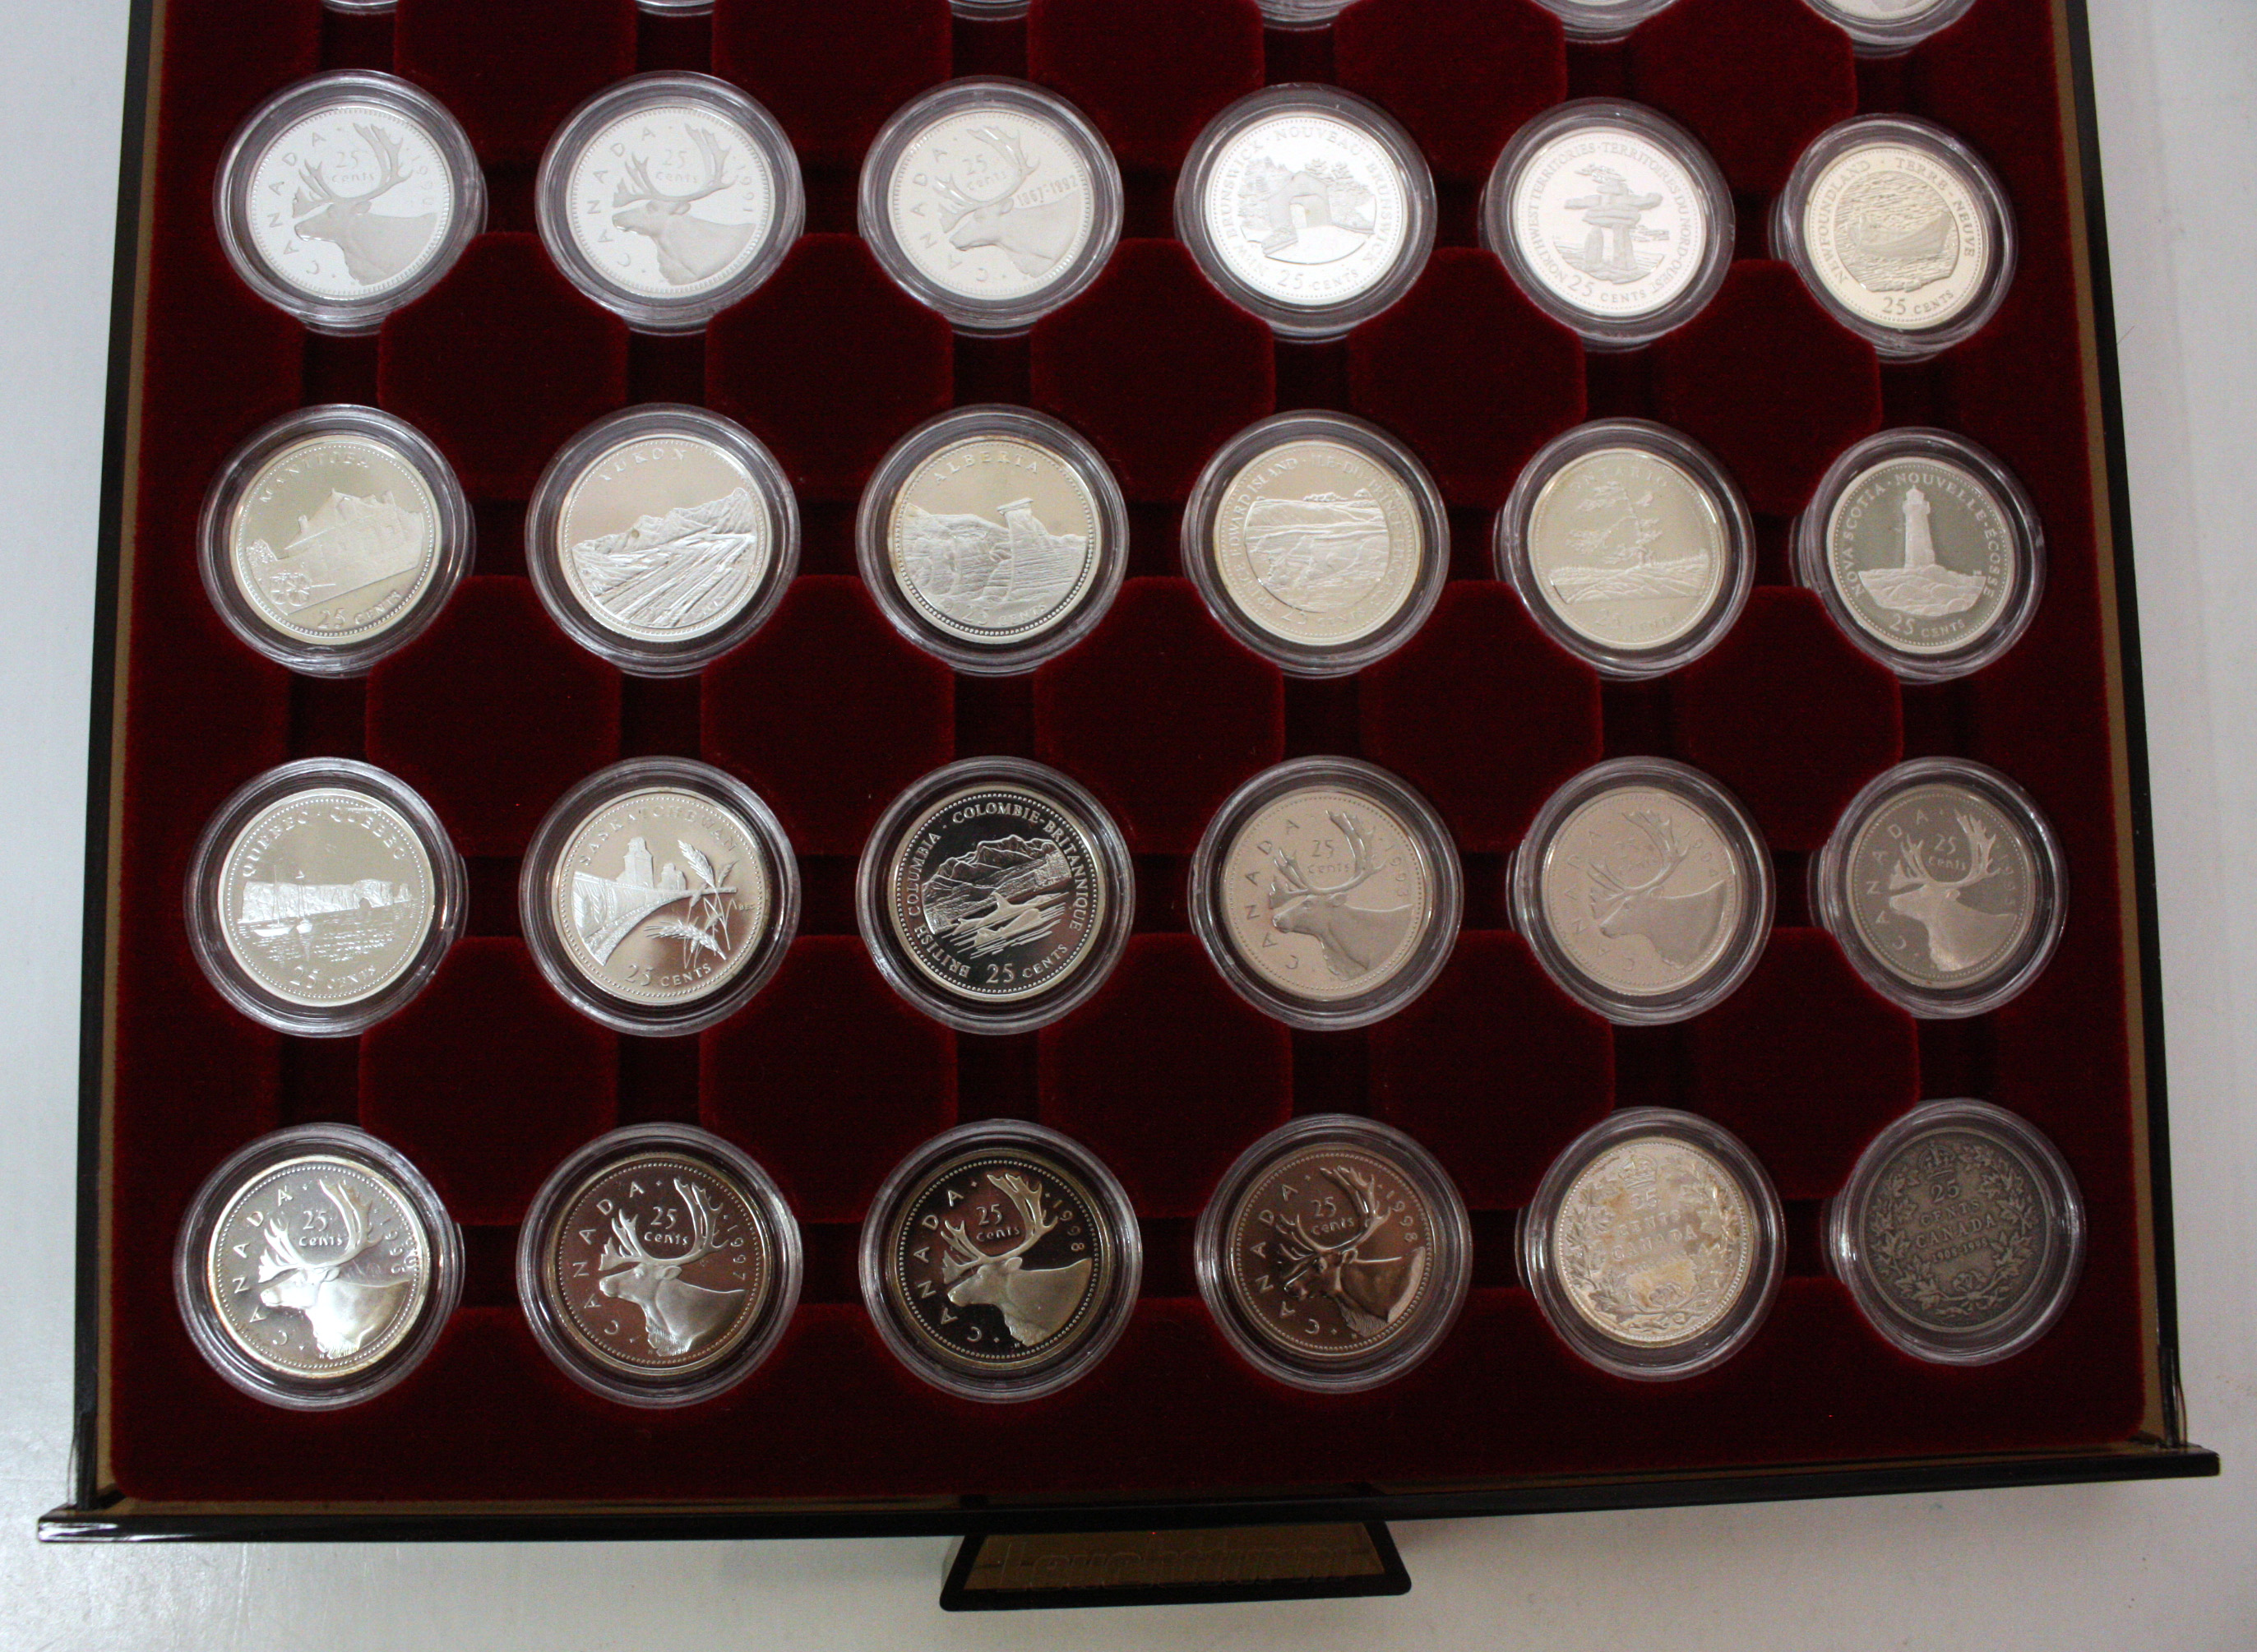 COMPLETE COLLECTIONS -  25-CENT COIN COMPLETE COLLECTION FROM 1972 TO 1998 - PROOF-LIKE, SPECIMEN OR PROOF FINISH